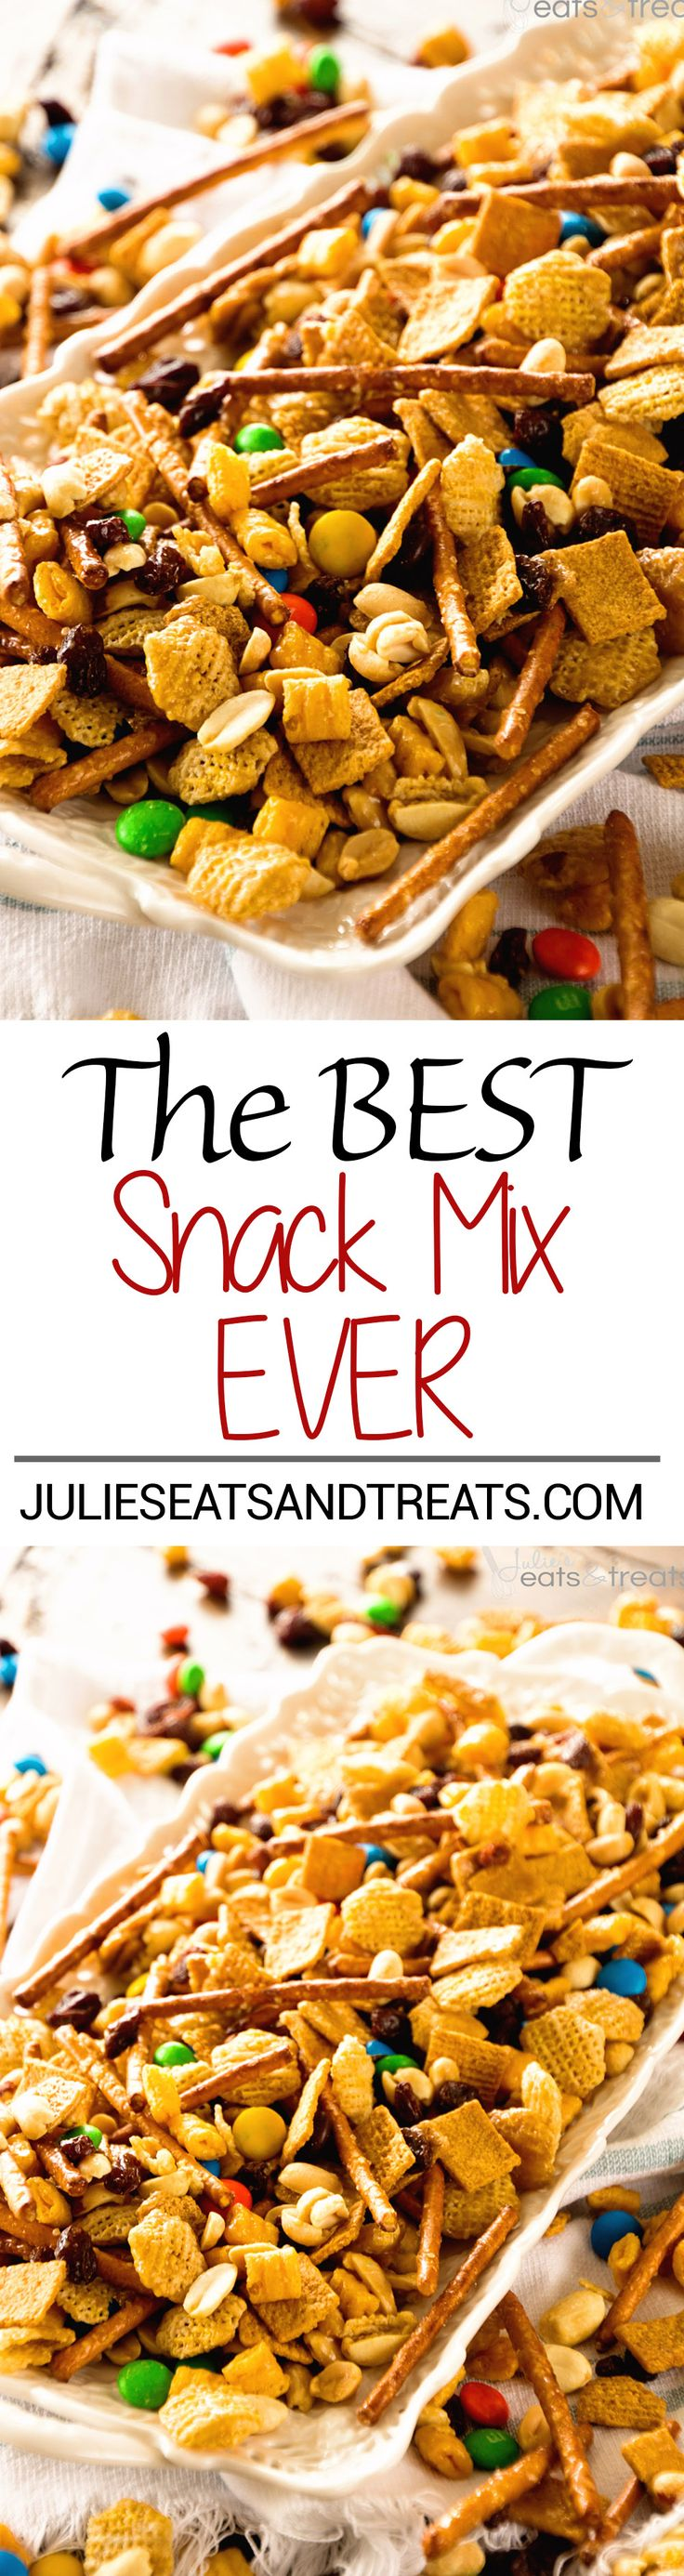 Snack Mix ~ This Snack Mix is like CRACK! So Addictive and Delicious! Full of Cereal, Pretzels, Peanuts, M&Ms and Raisins! Perfect for Christmas and Holiday Parties! on MyRecipeMagic.com